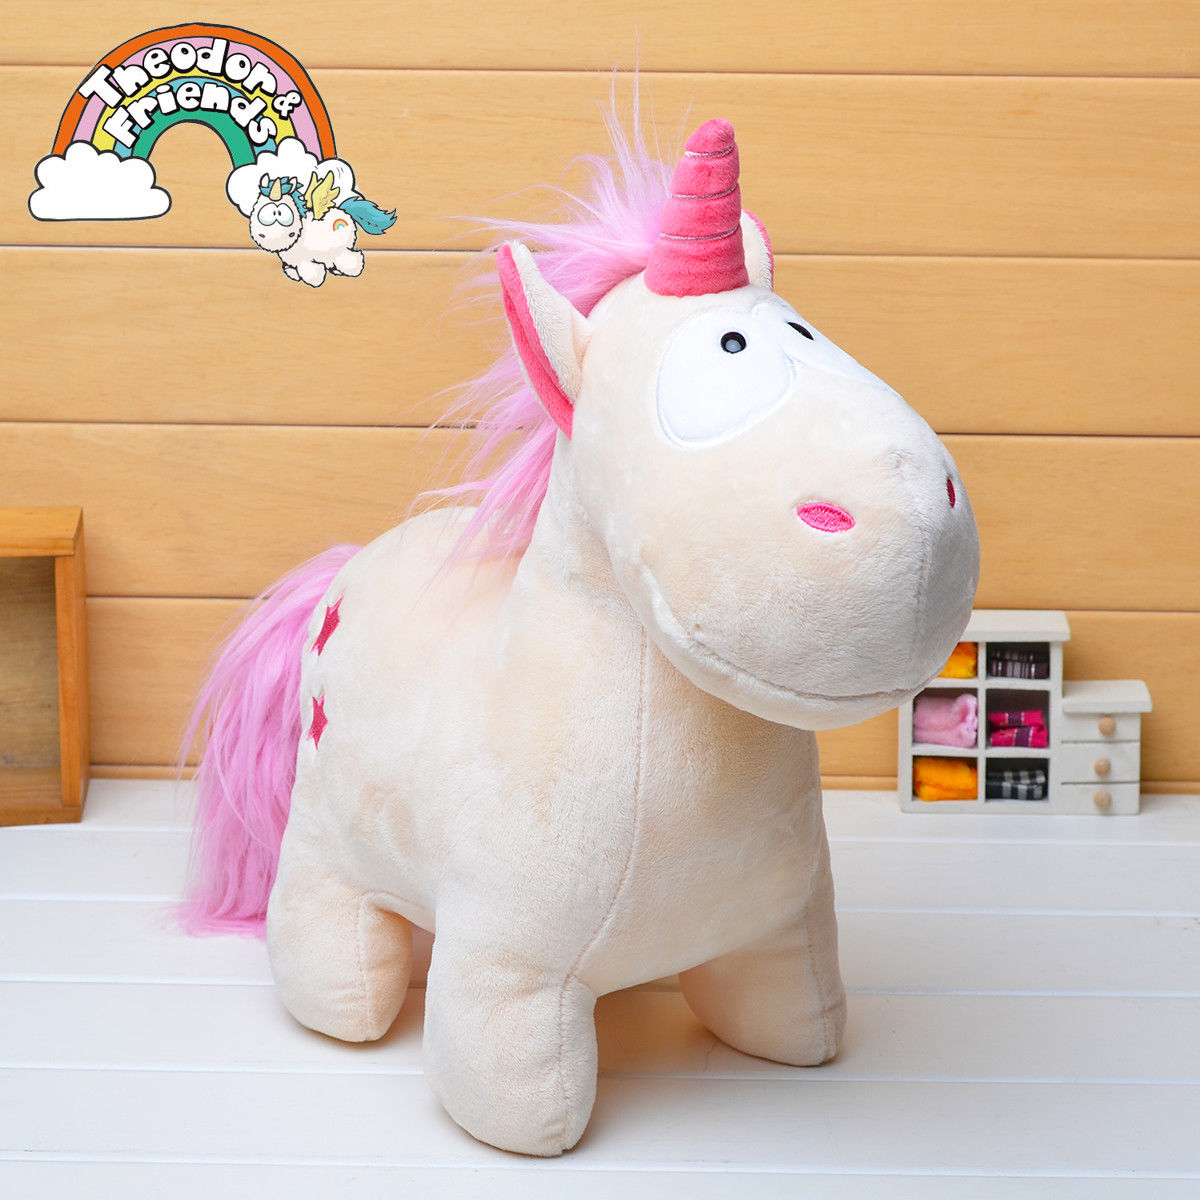 Cute Unicorn Horse Plush Fluffy Stuffed Cotton Lovely Animal Cartoon Doll Toys Kids Gifts New cartoon animal toy unicorn cat plush pillow soft unicorn horse cushion plush toys new style doll